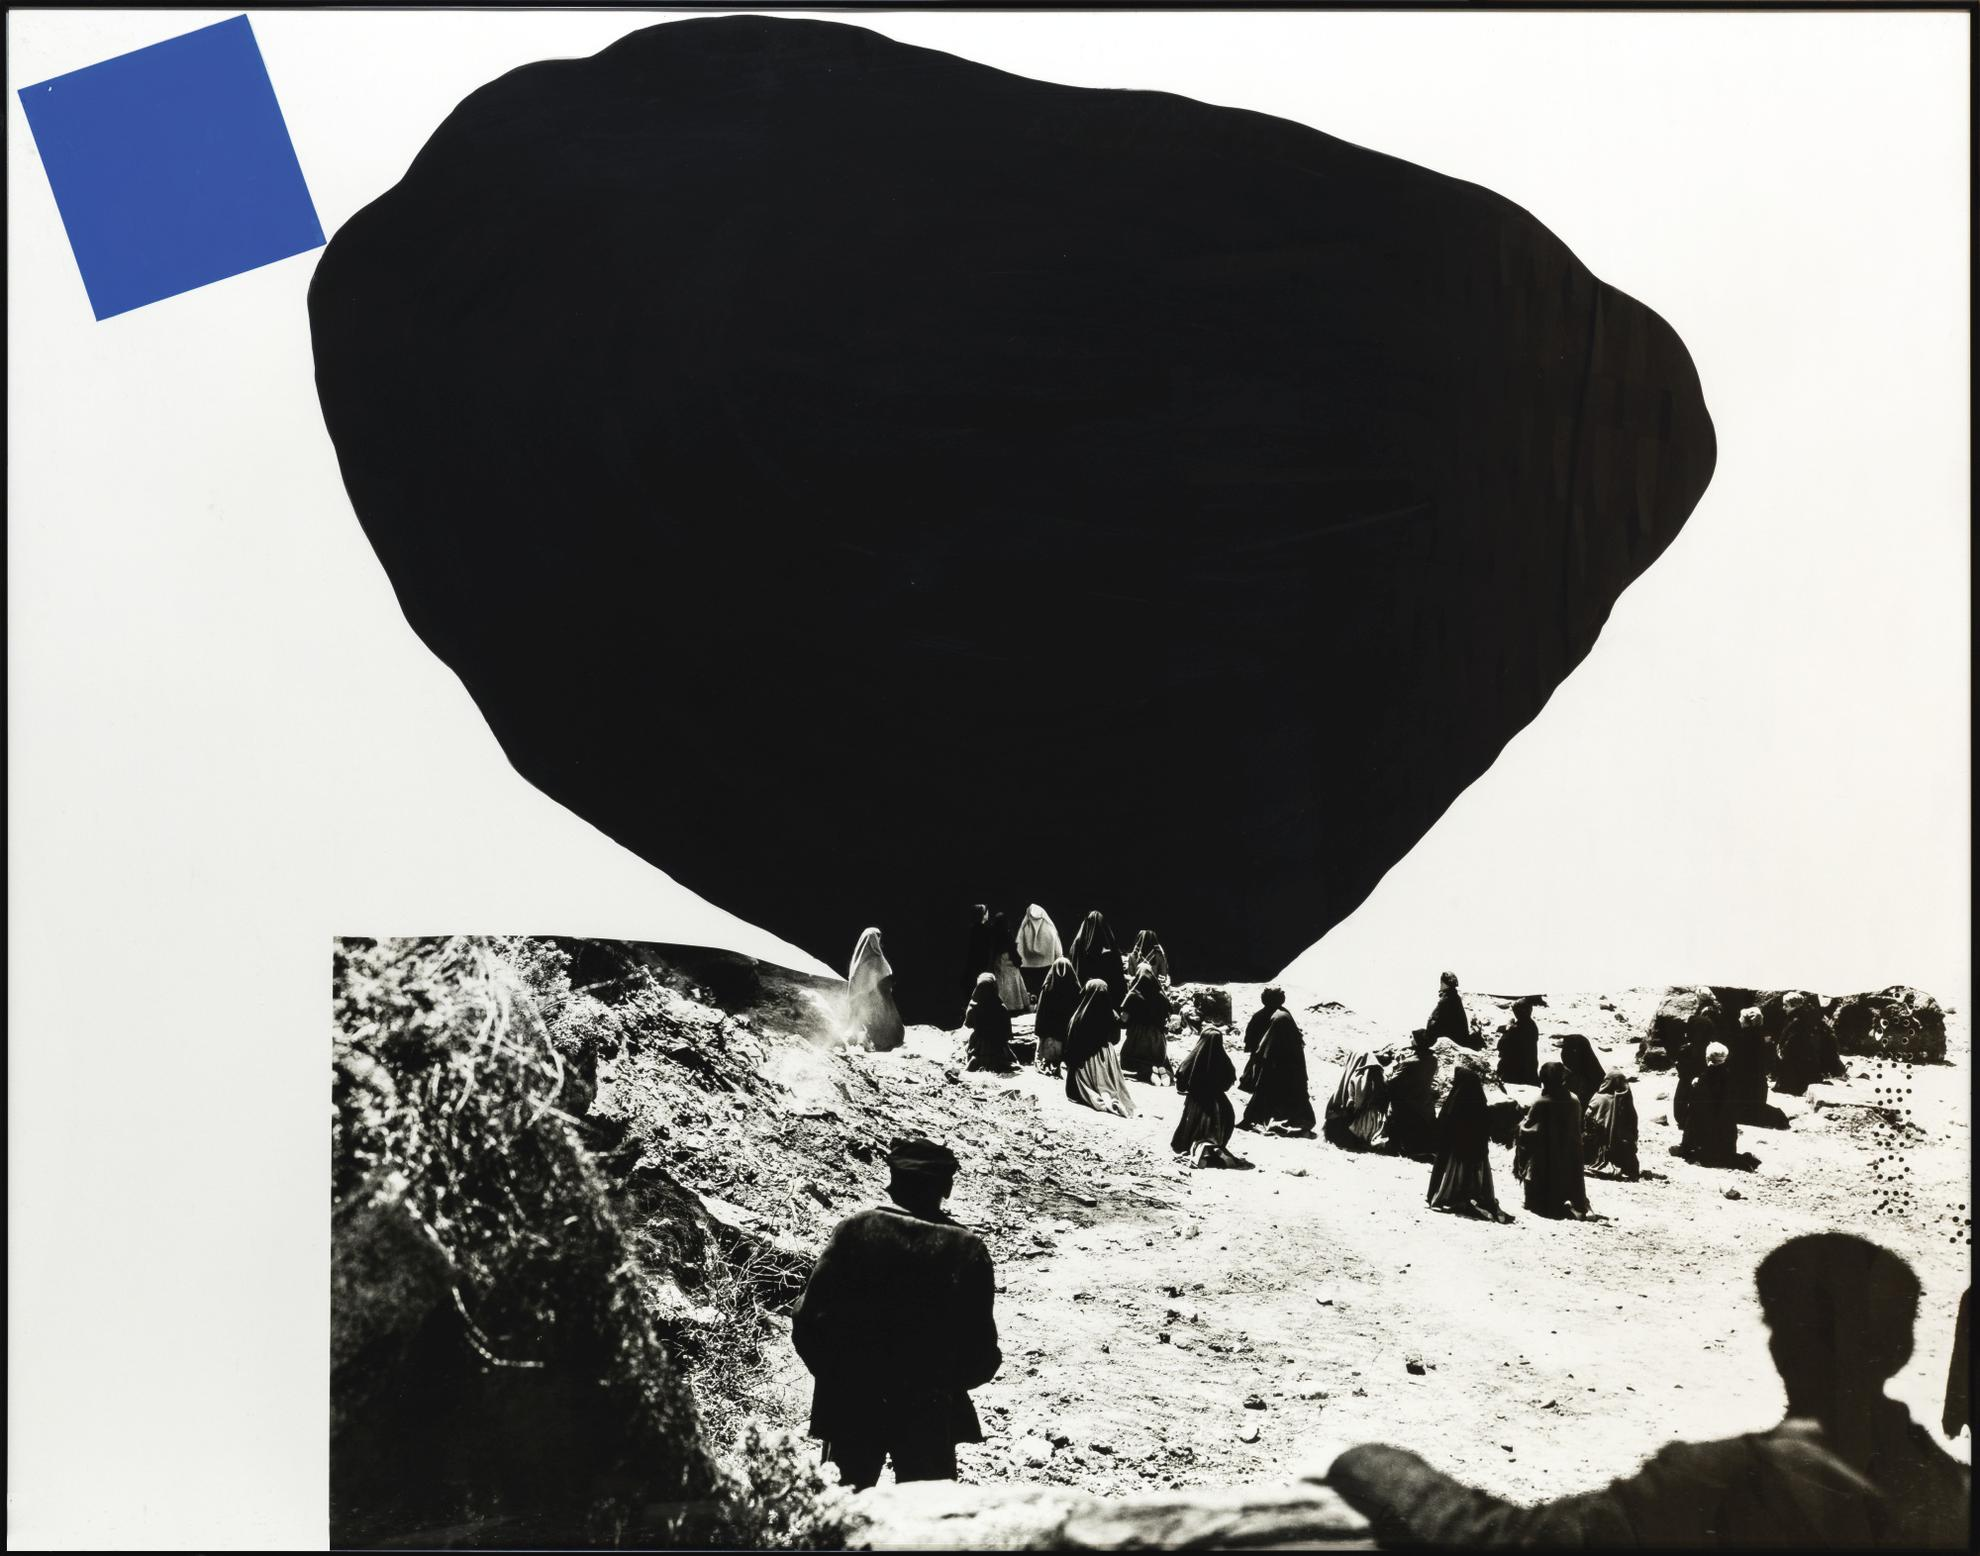 John Baldessari-Black Shape (Large)/ Blue Shape (Small) (With Onlookers)-1990